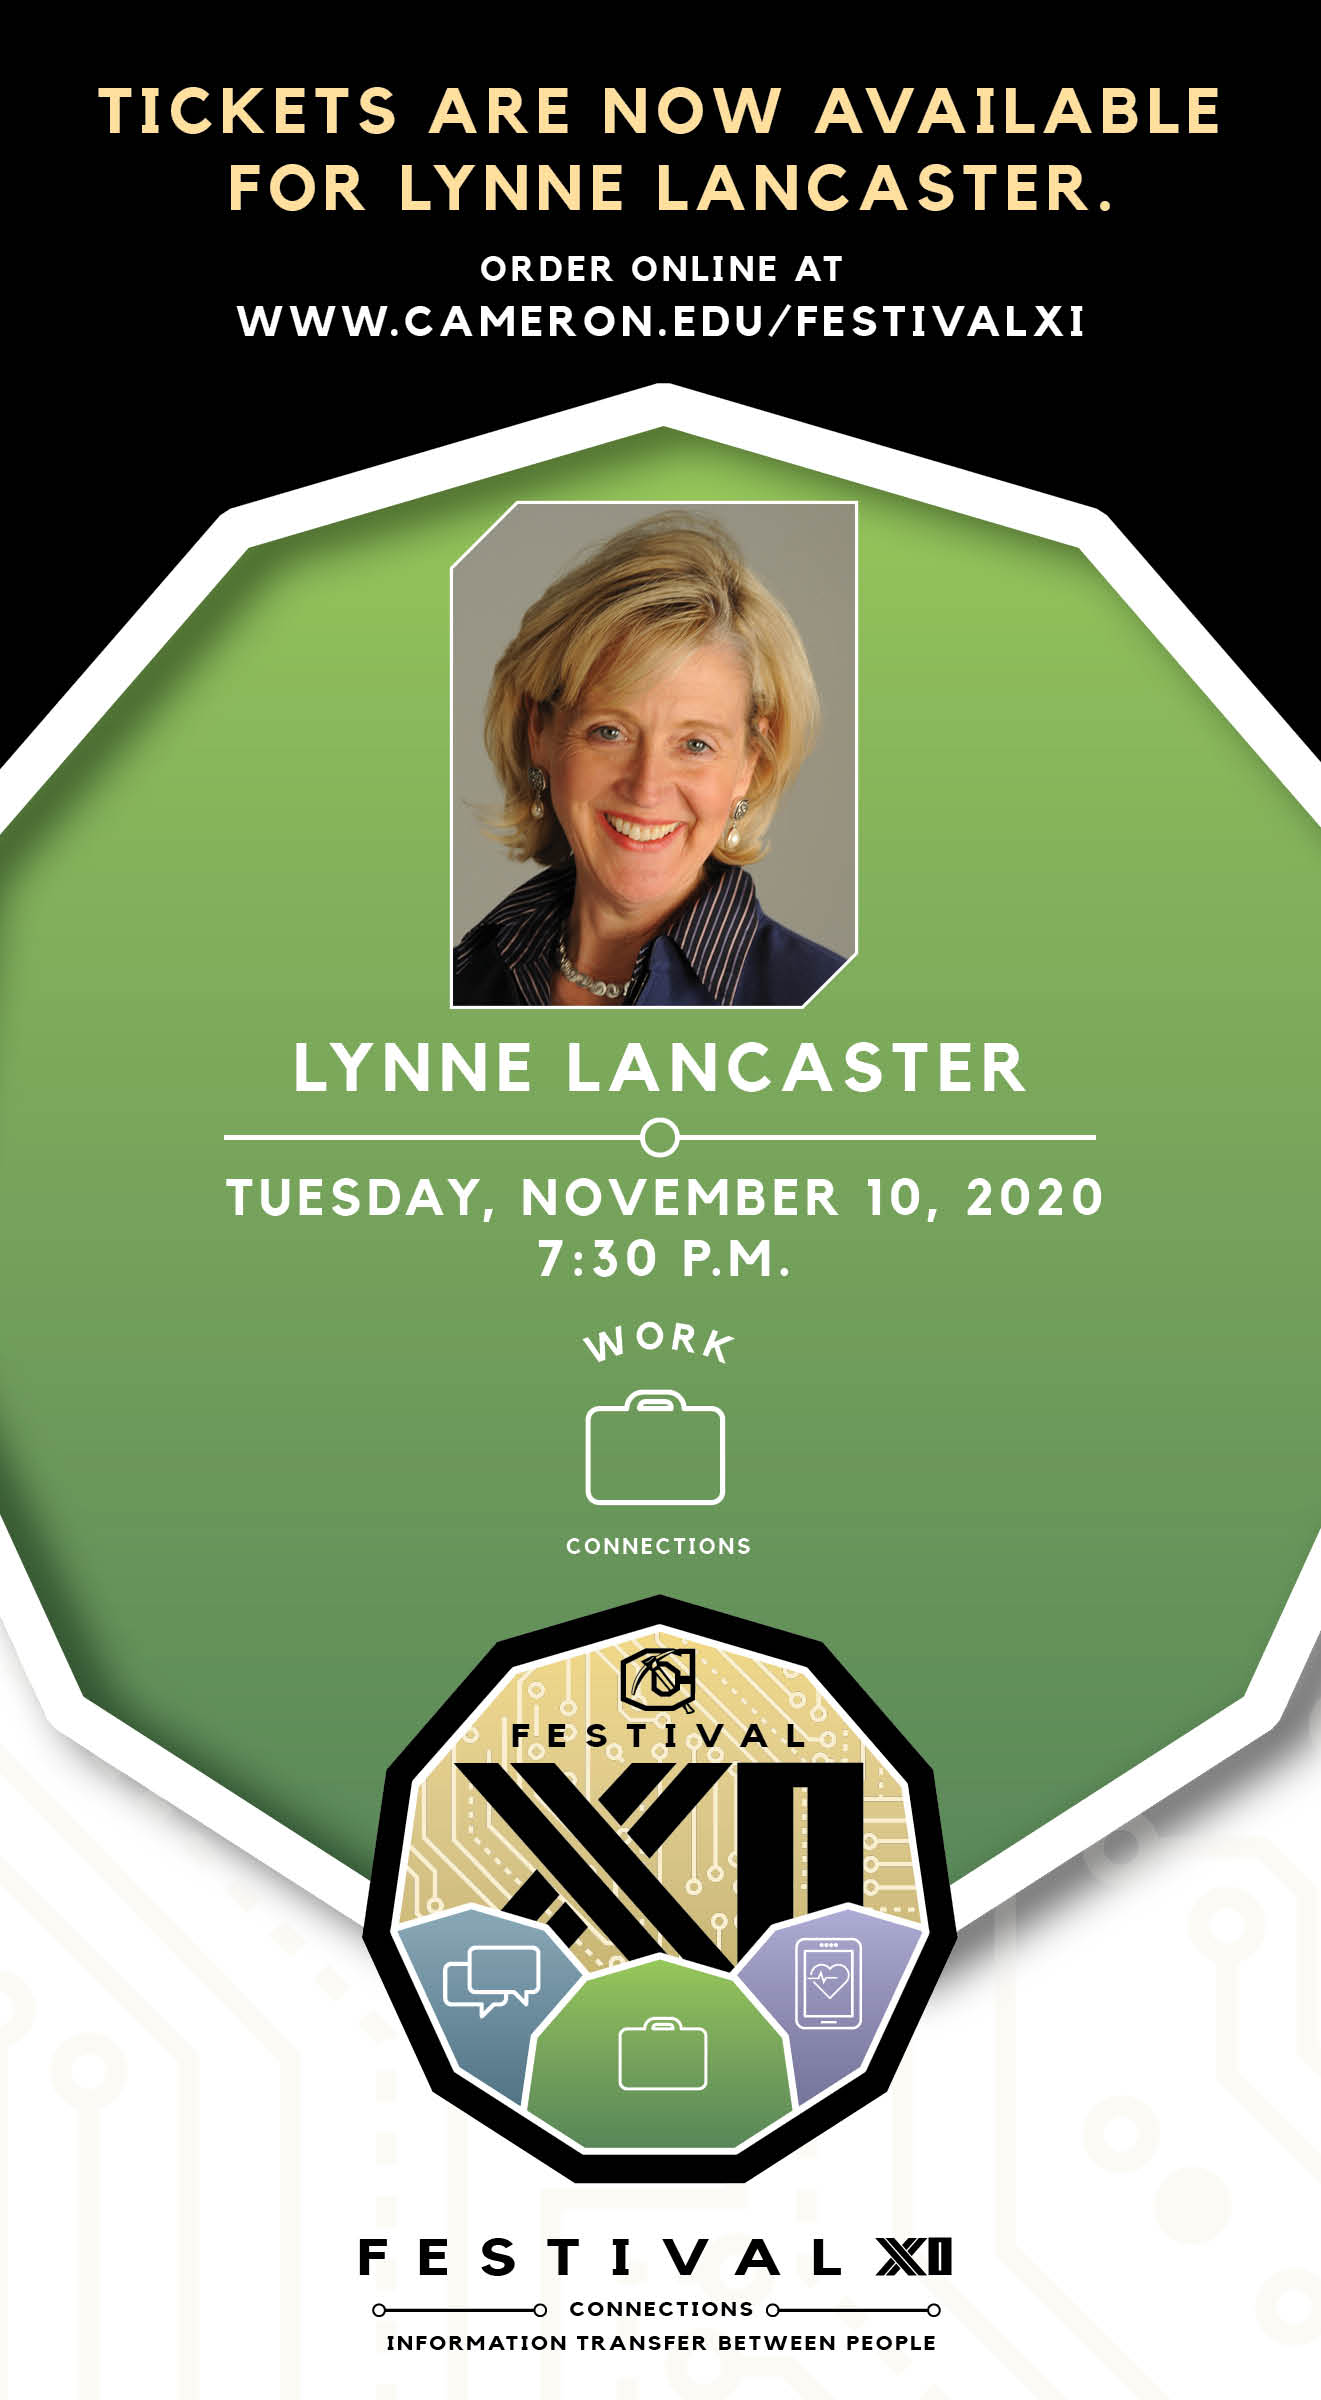 Tickets are now available for Lynne Lancaster. Order online at www.cameron.edu/festivalxi Tuesday, Nov 10 7:30 p.m.